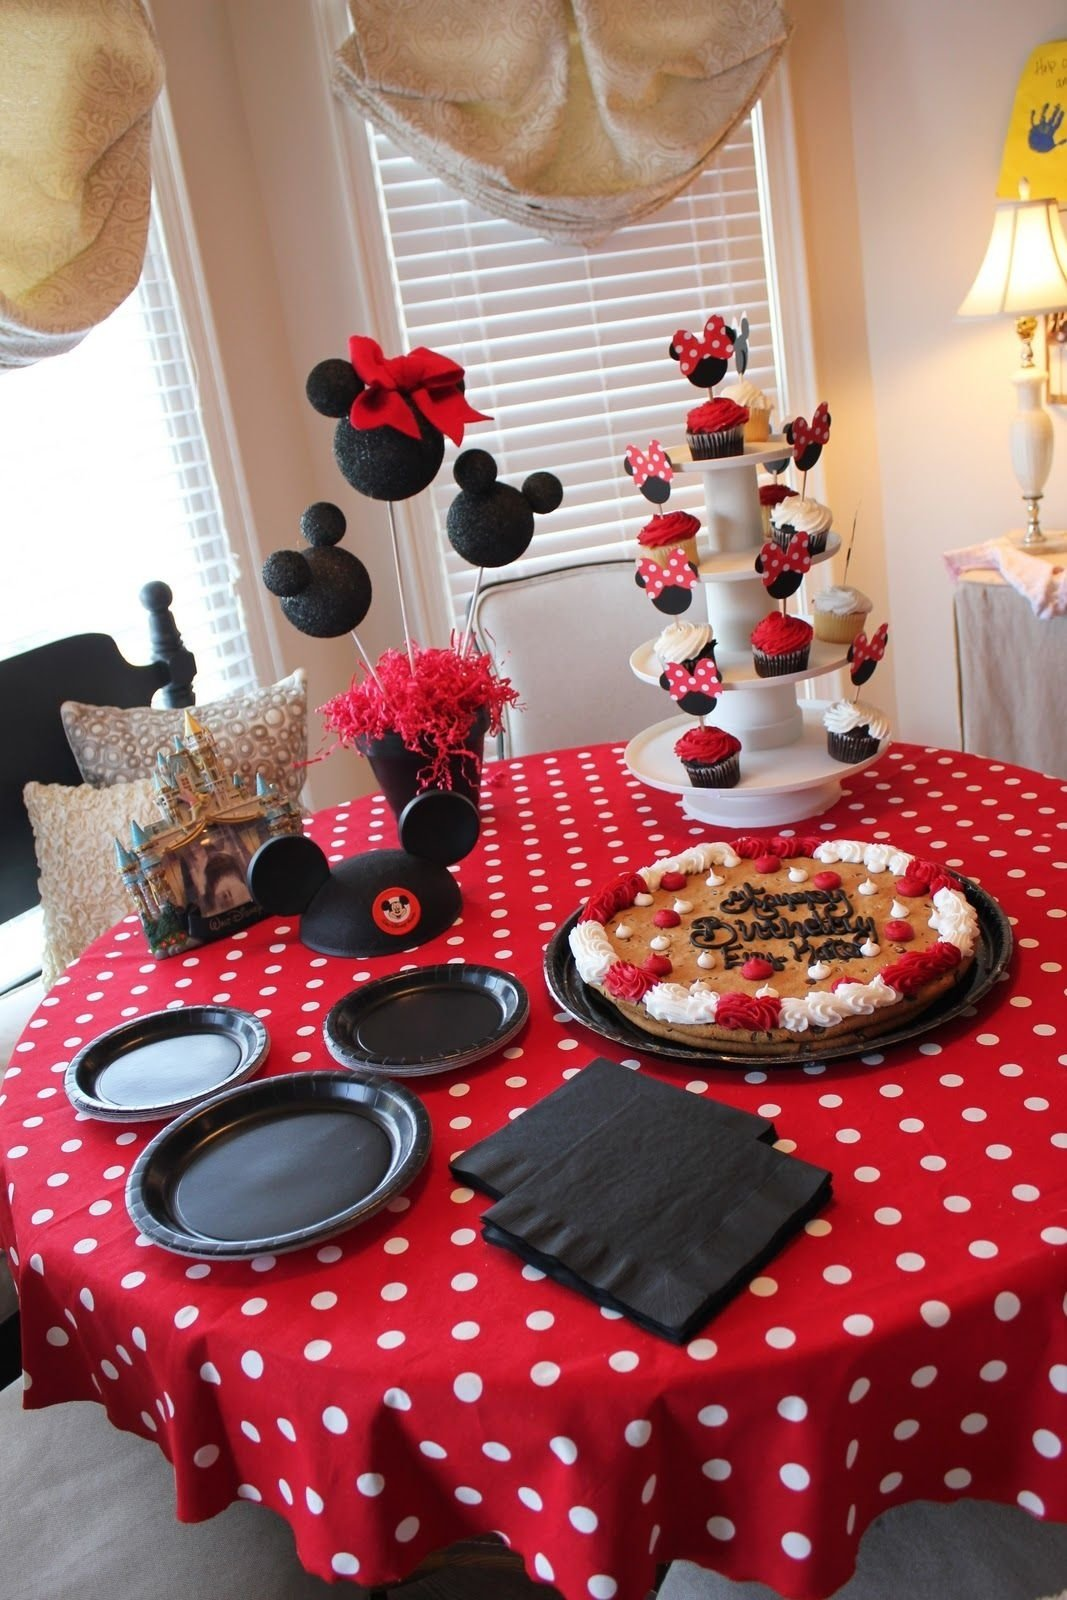 10 Trendy Minnie Mouse Table Decorations Ideas mickey mouse party cupcakes and decor i love it party ideas 1 2020